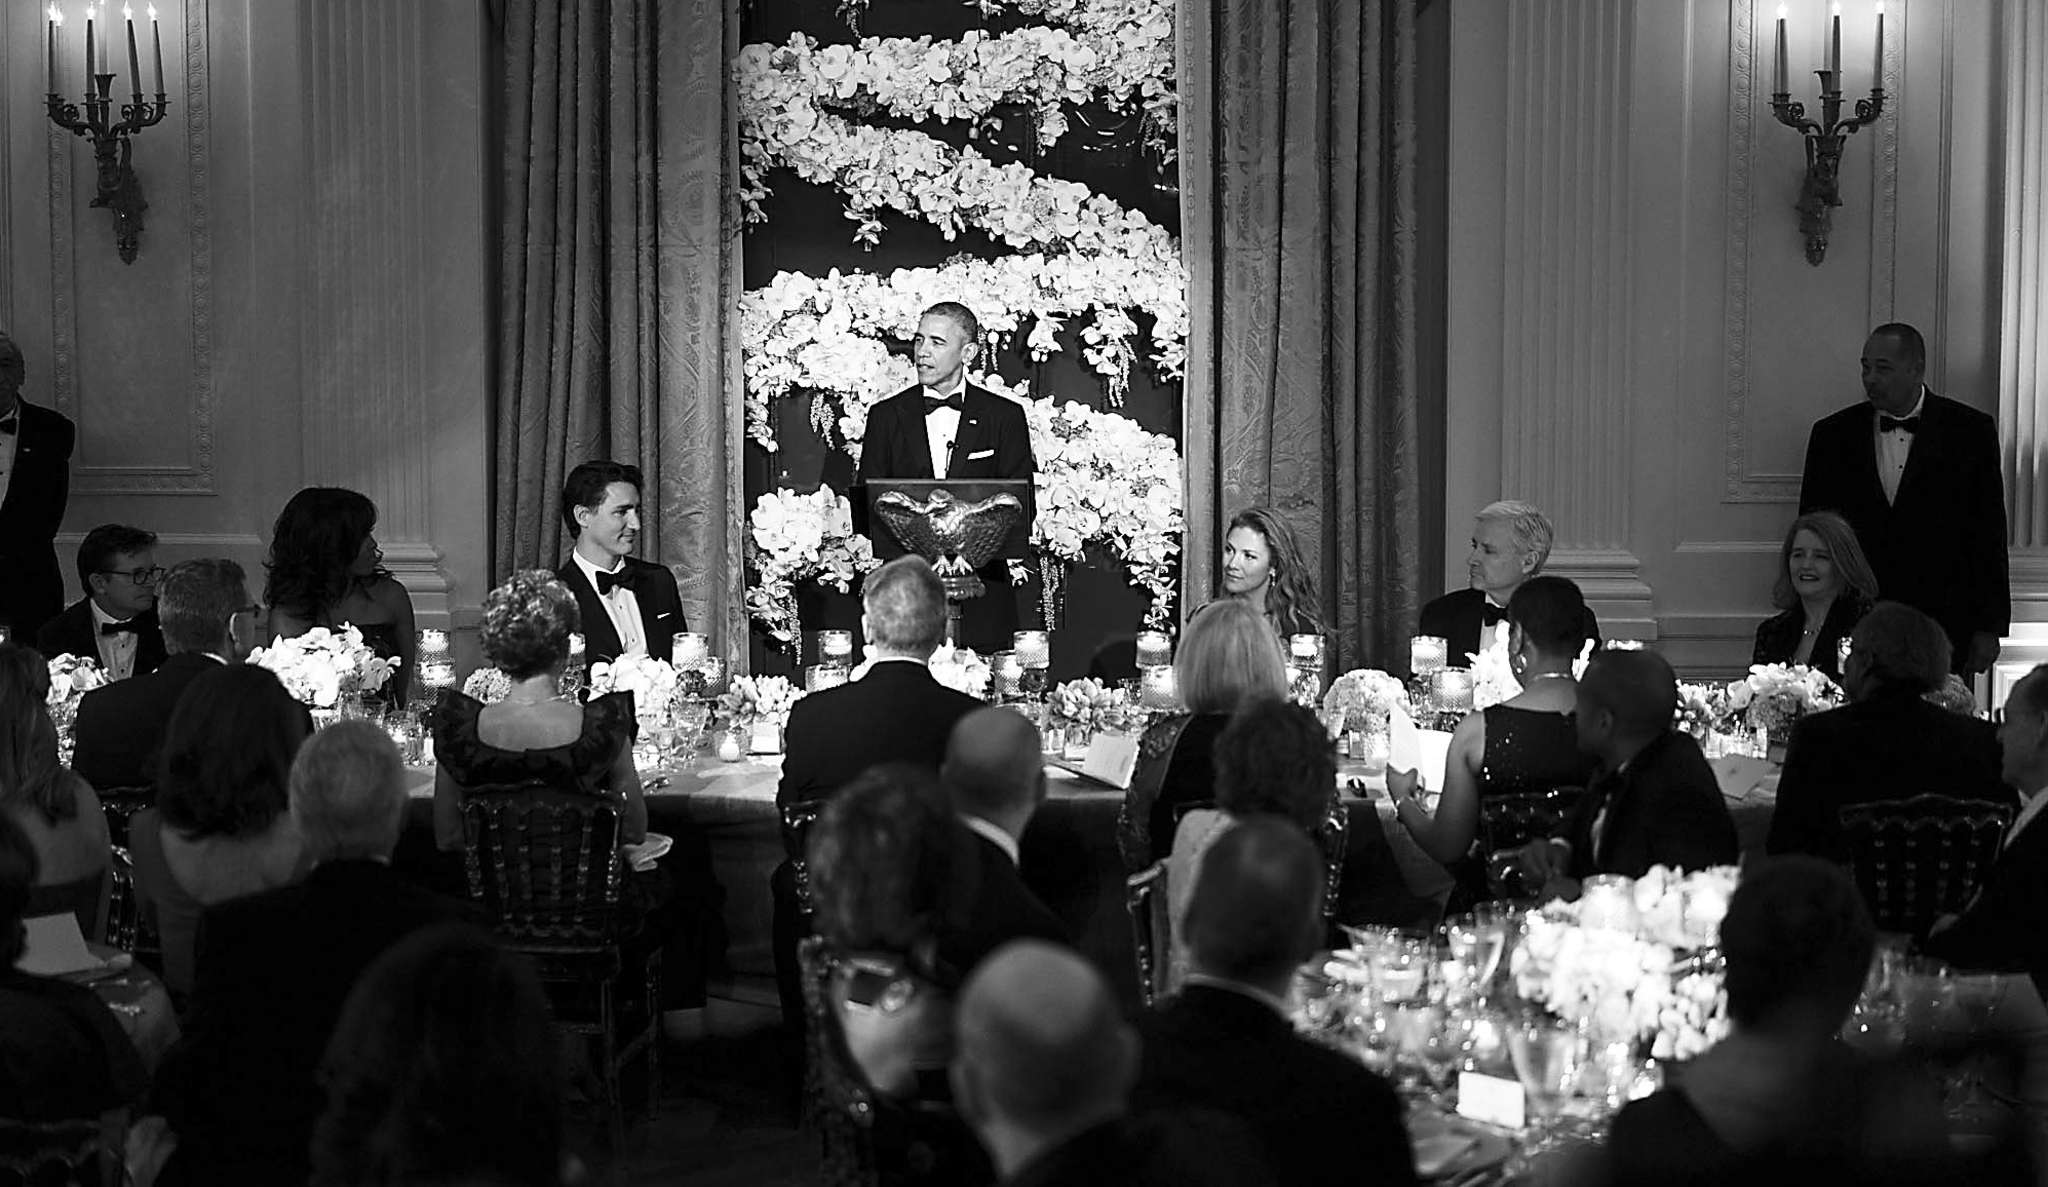 The State Department tries to hide the costs of White House state dinners, which are paid for by taxpayers. Here is President Obama, speaking at a state dinner in March.